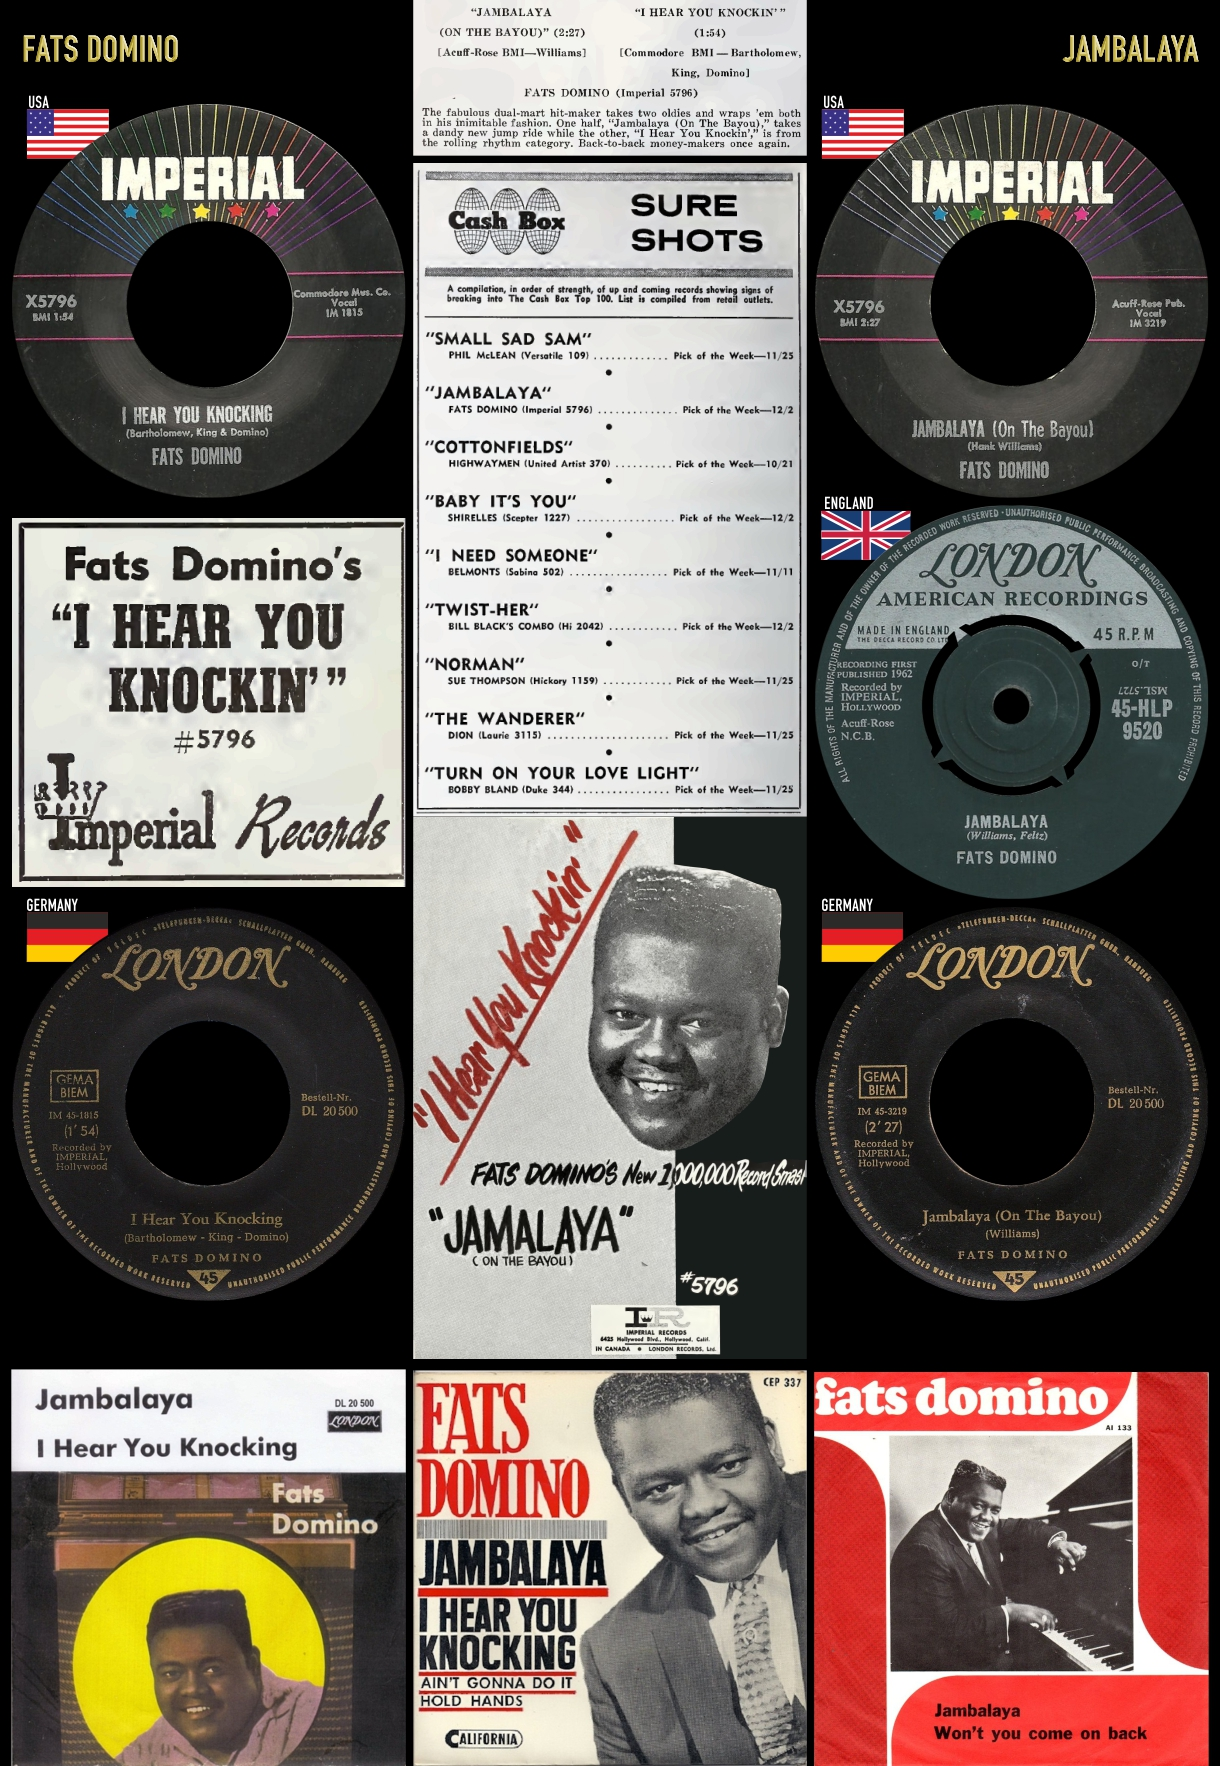 611209_Fats Domino_Jambalaya